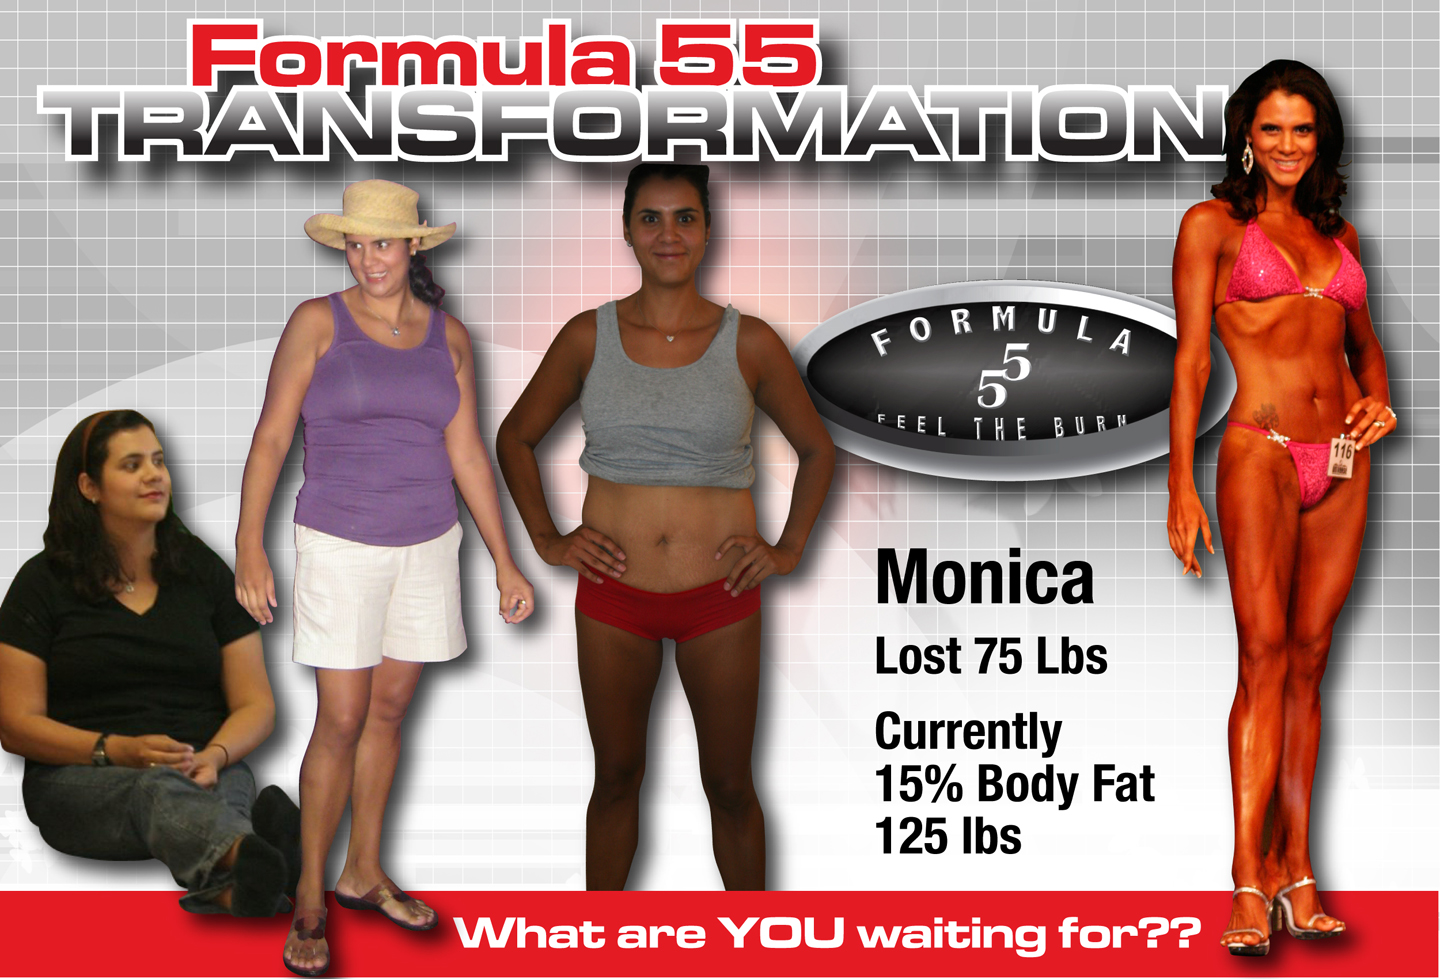 form-55-Transformation-Monica-New.jpg